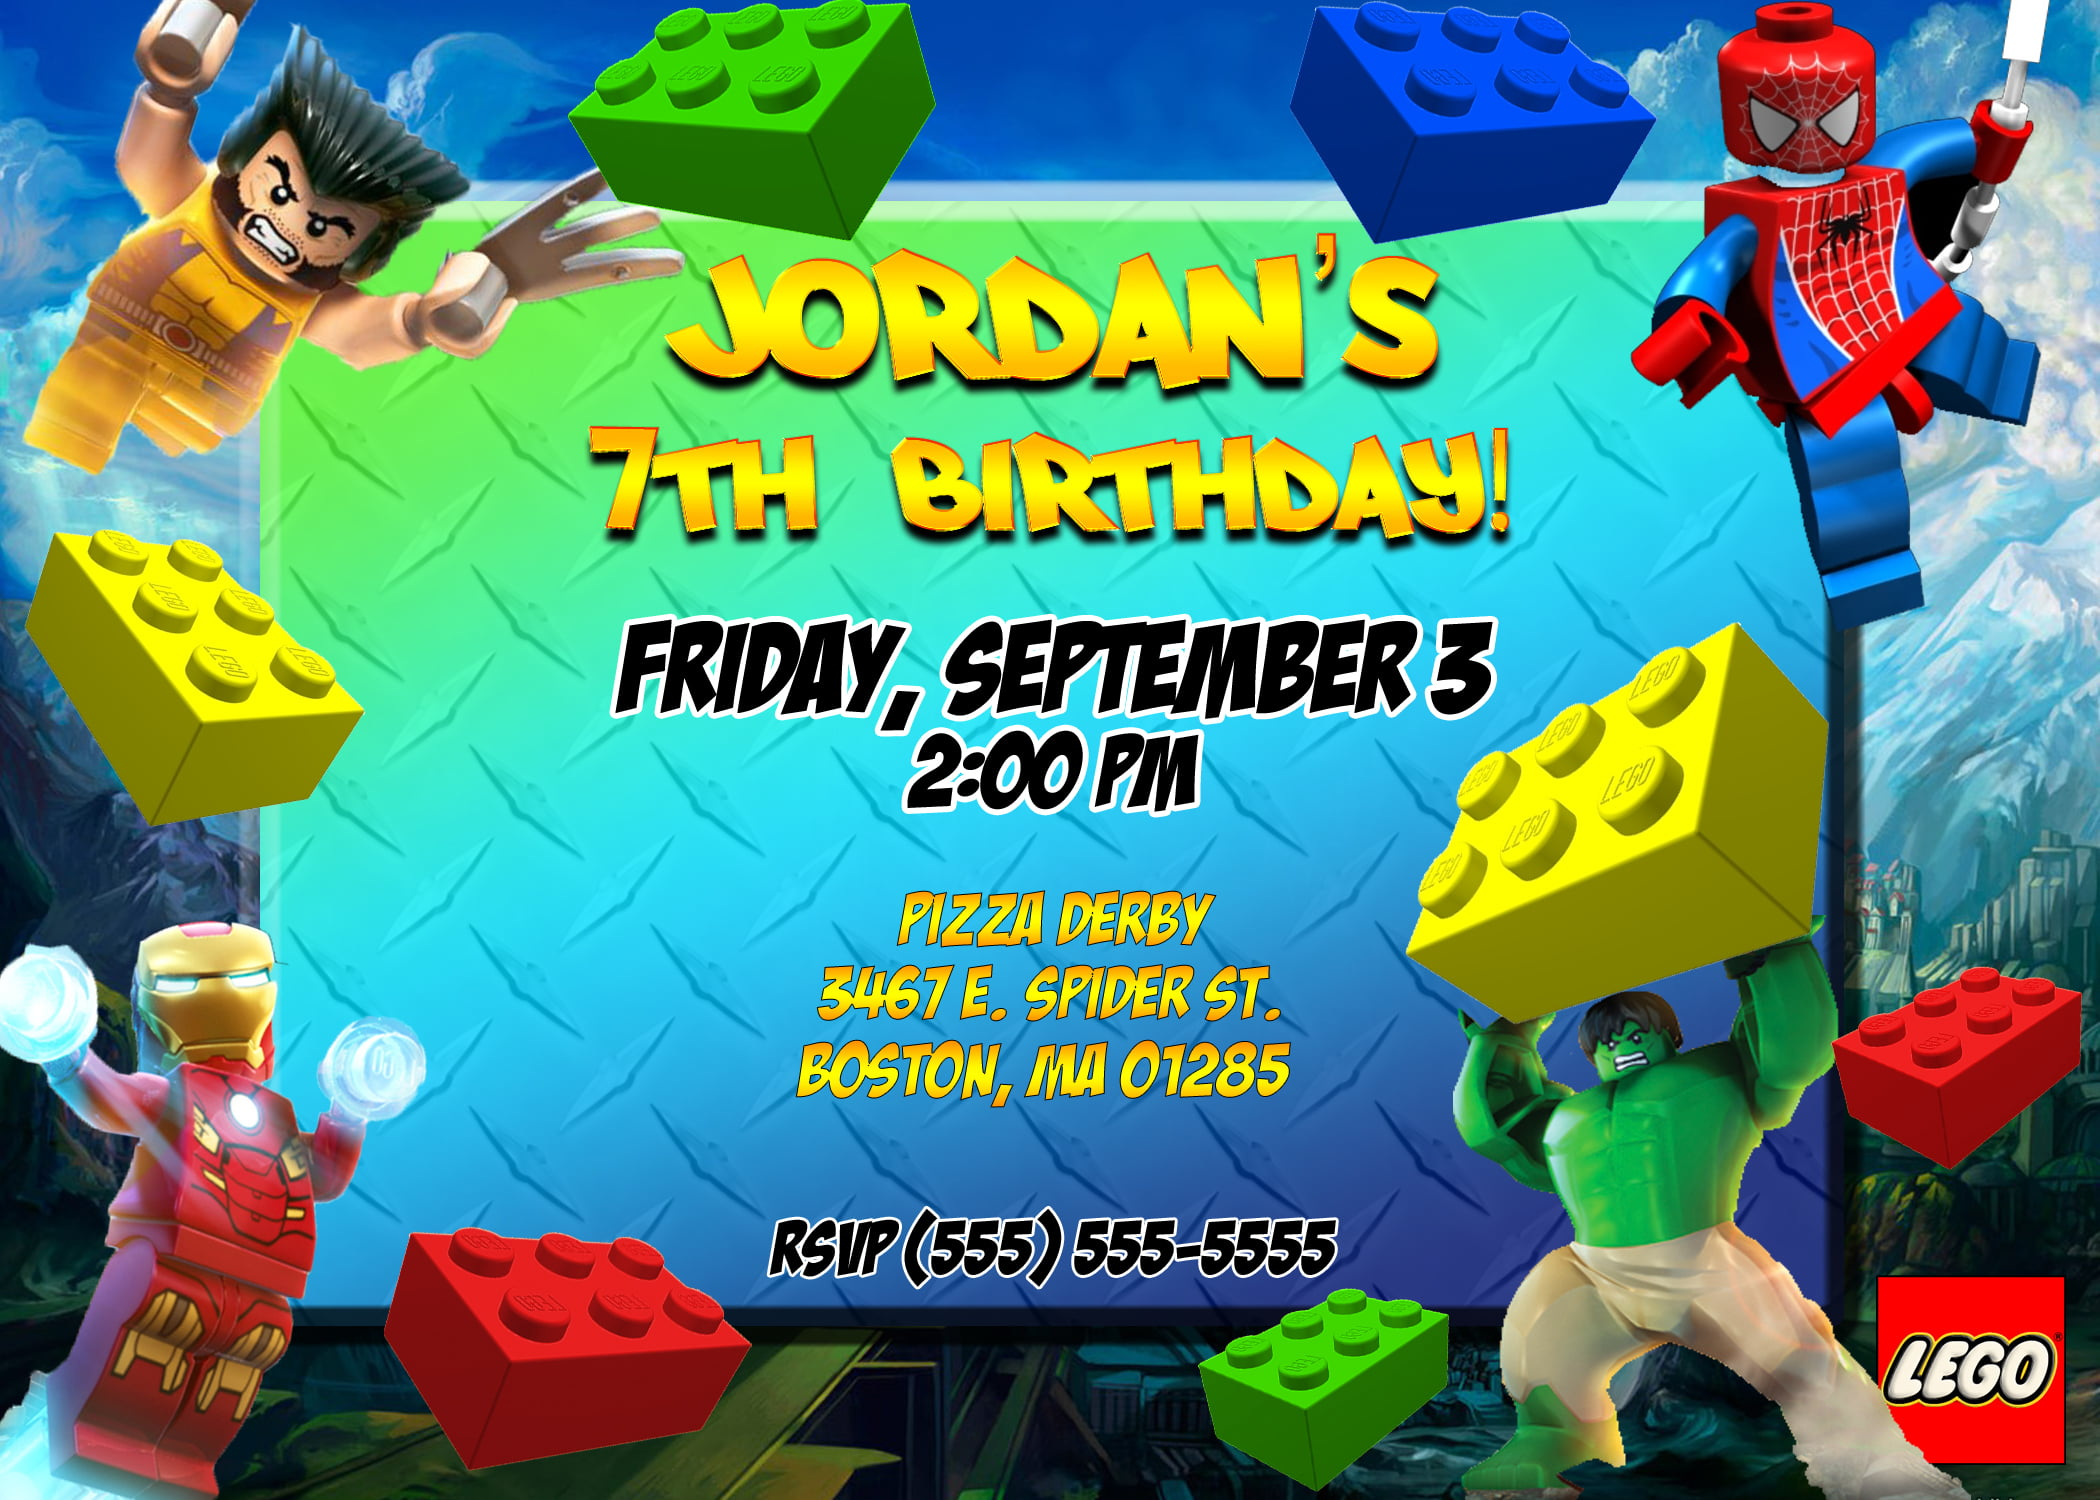 Superhero Lego Birthday Party Invitation